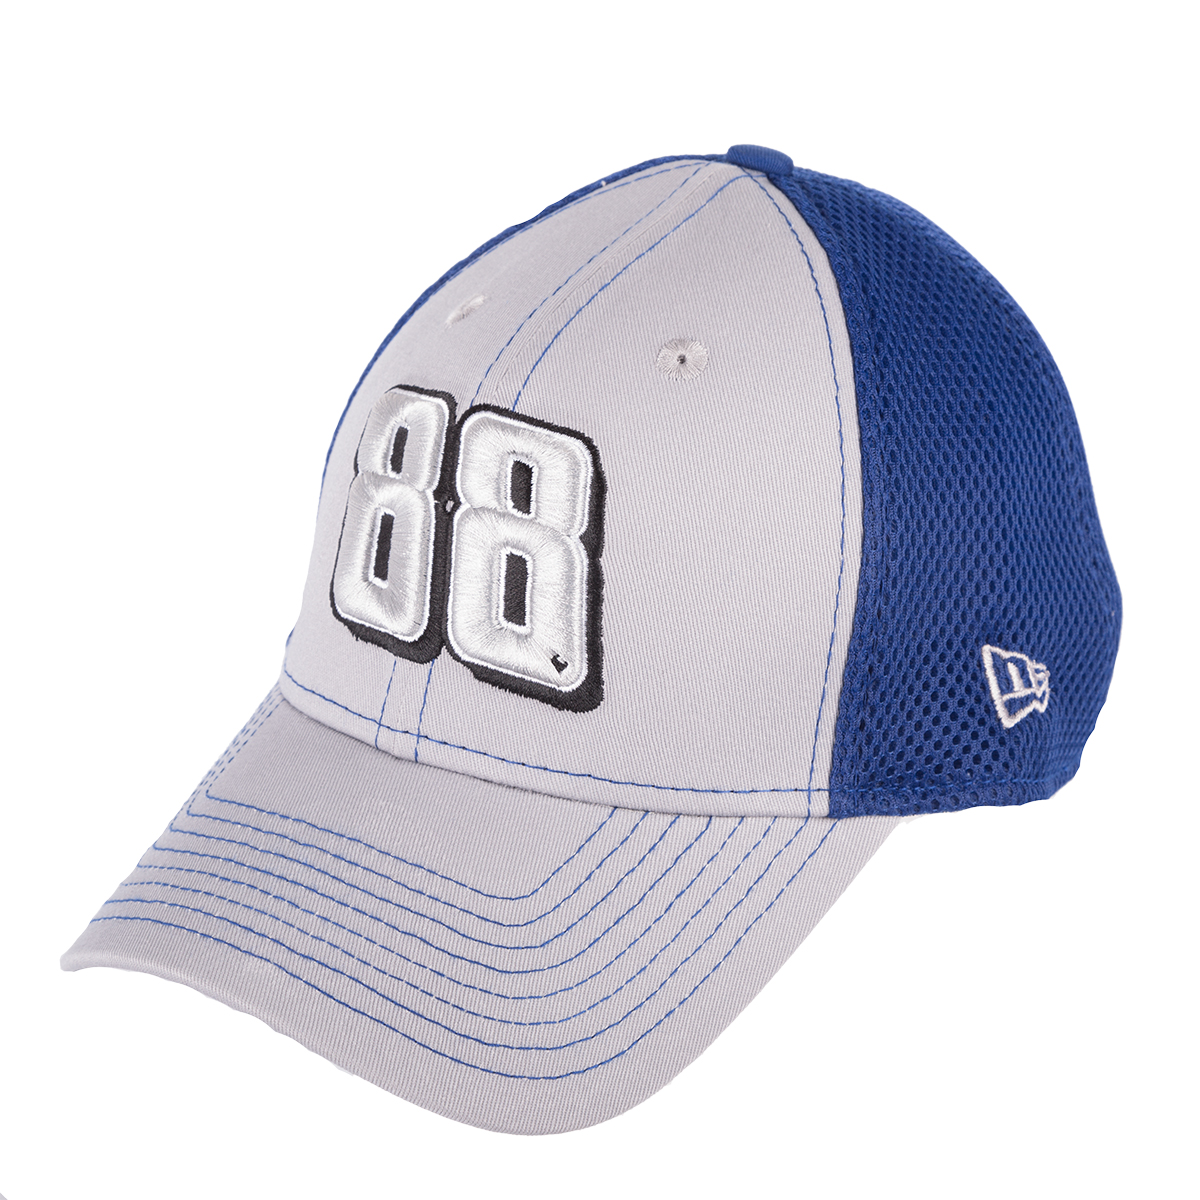 Dale Jr. #88 Team Front Neo